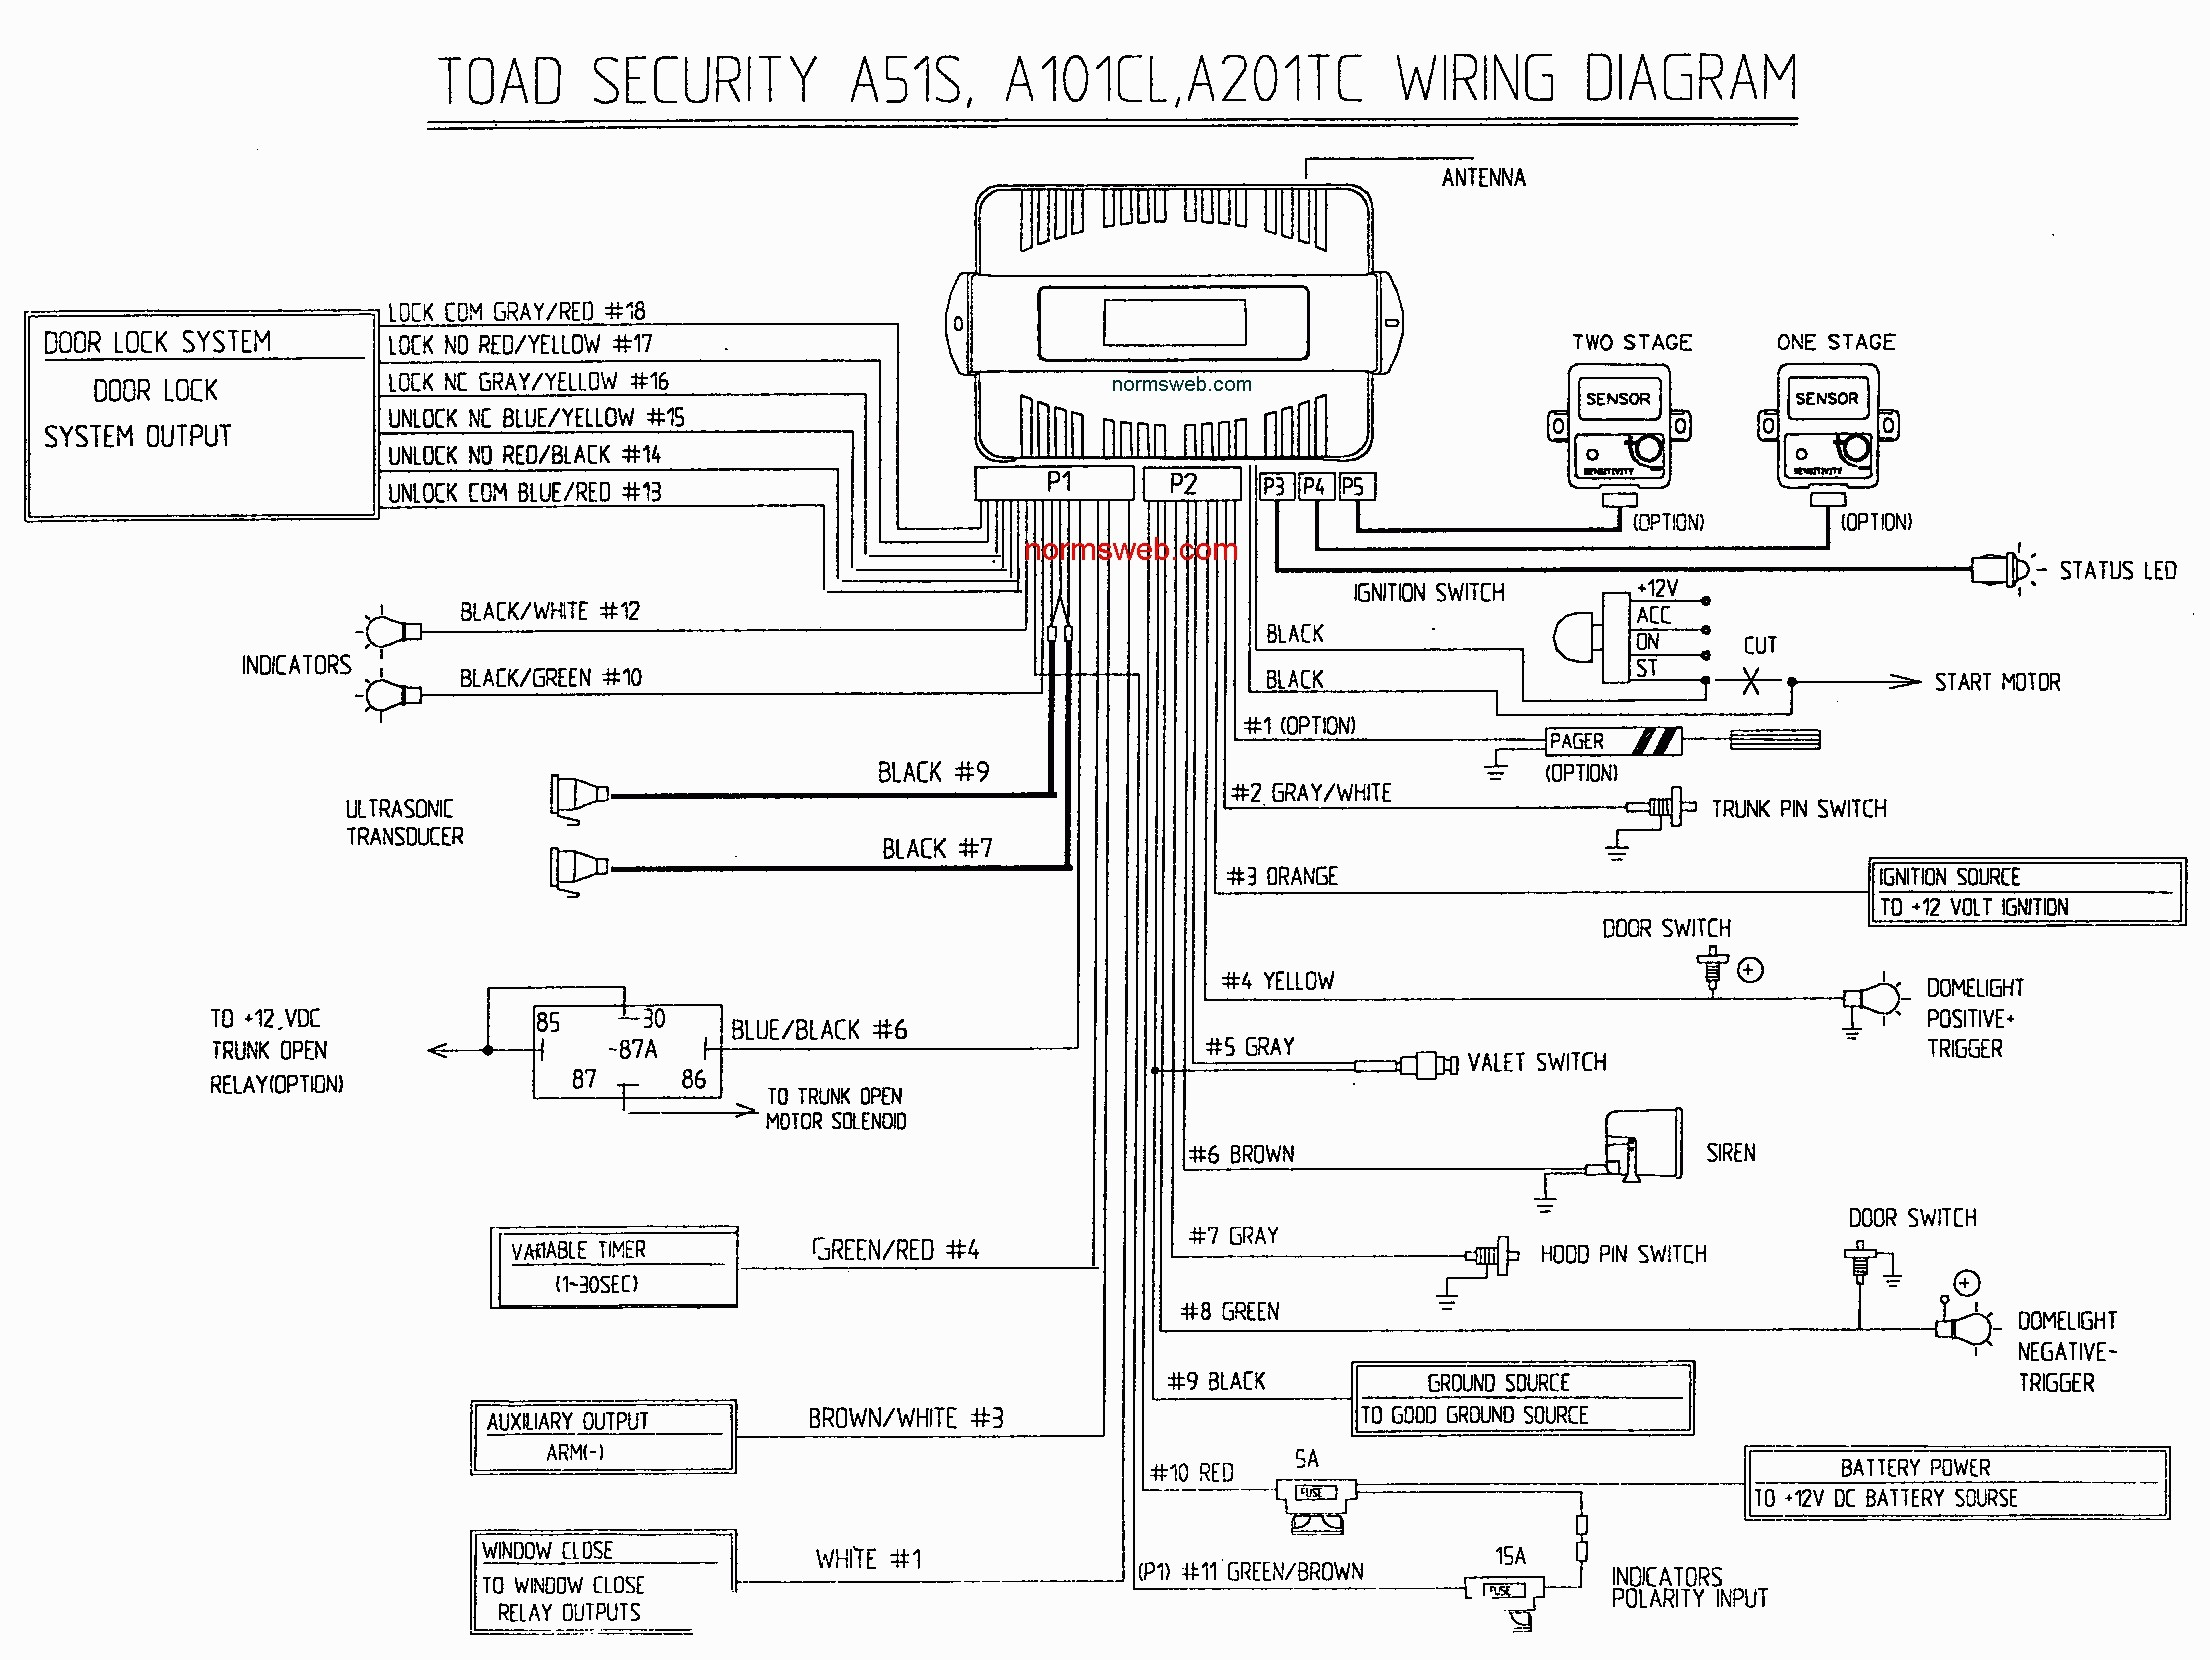 2004 Yukon Wiring Diagram Schematics Gmc Envoy Slt All Trusted Black Wheels